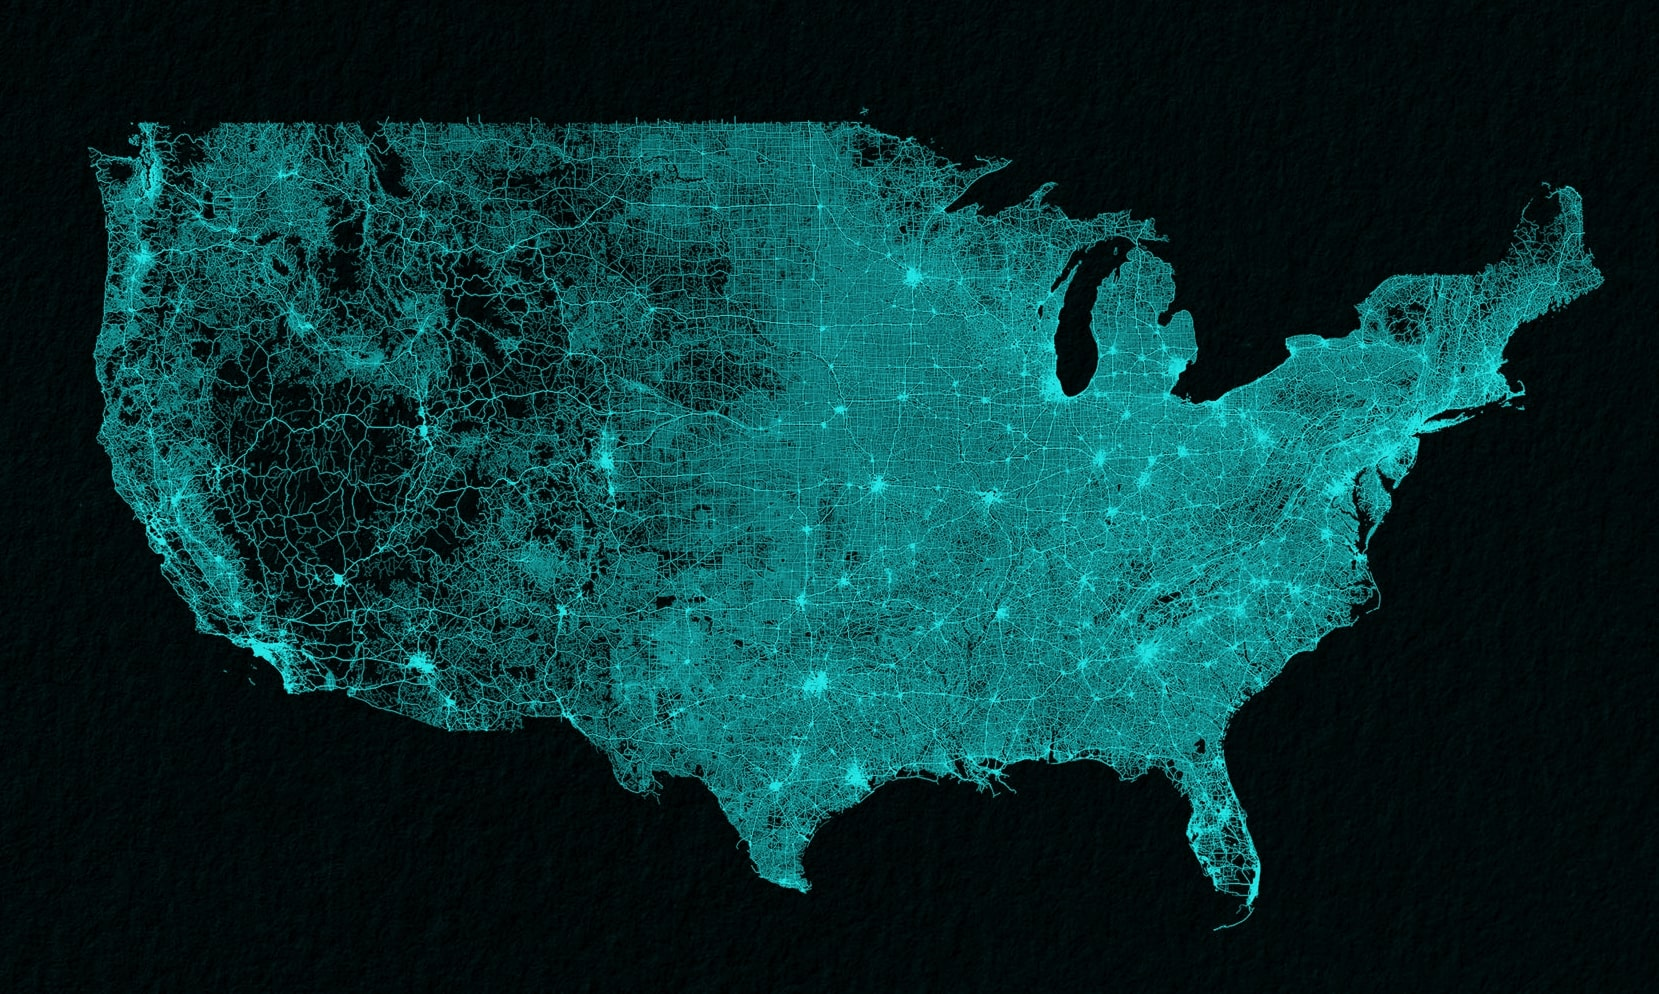 A Beautiful Visualization Of All The Roads In The United States